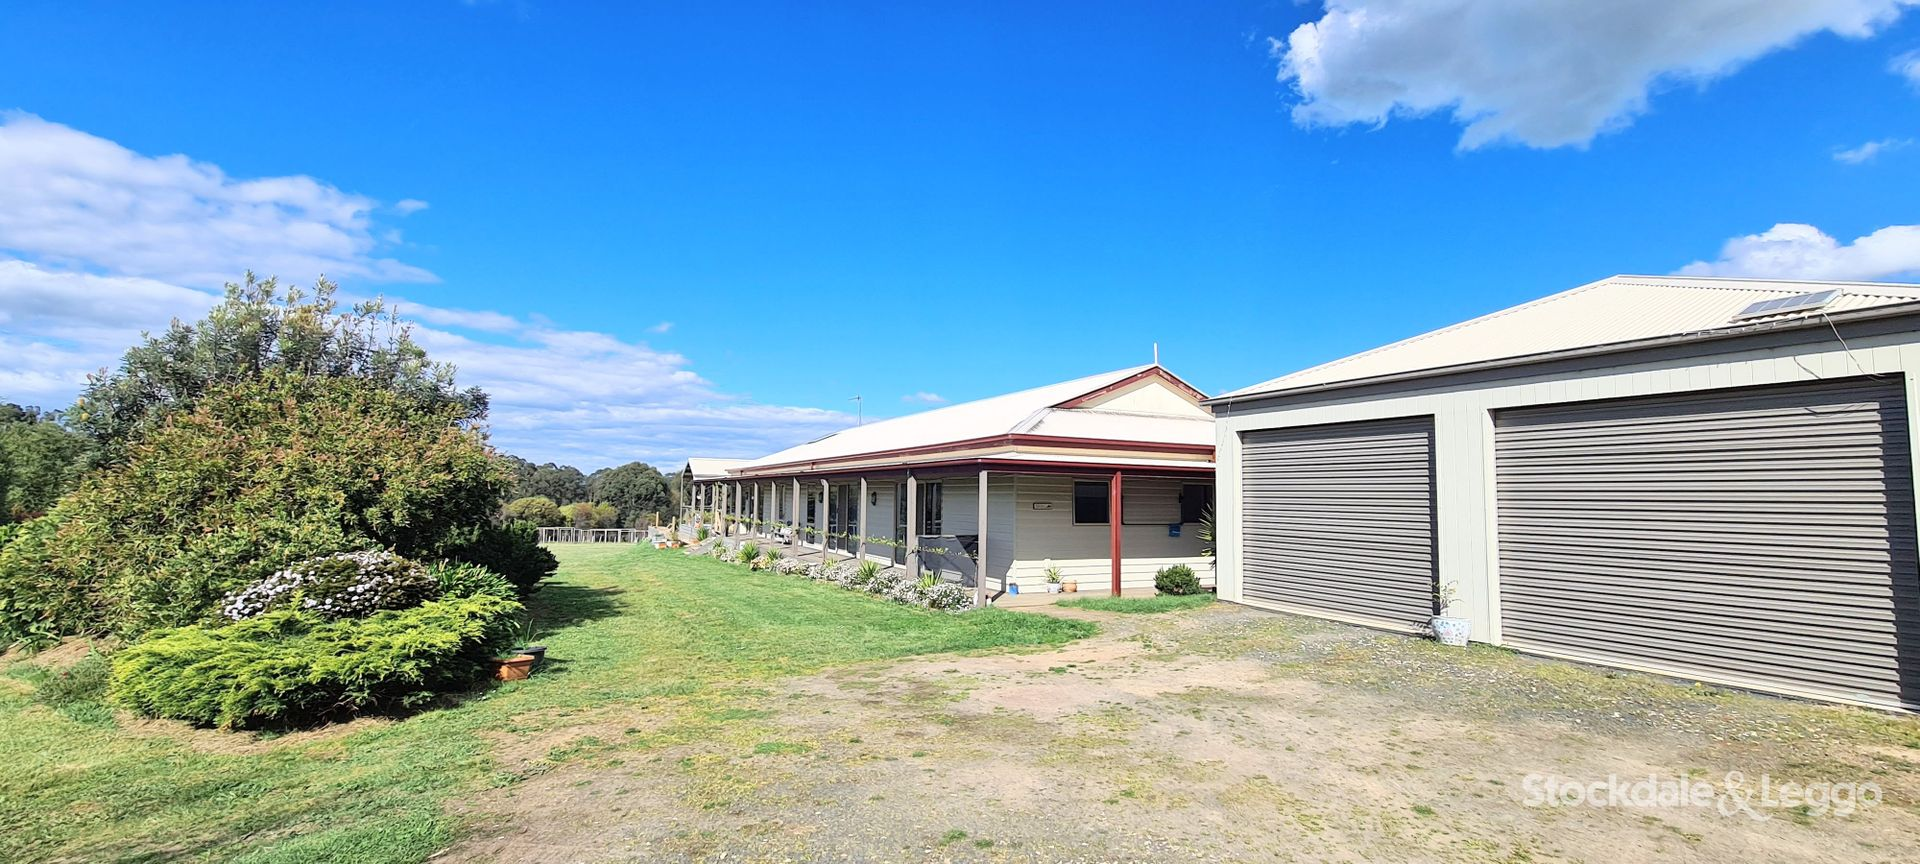 54 Wells Road, Mirboo North VIC 3871, Image 1